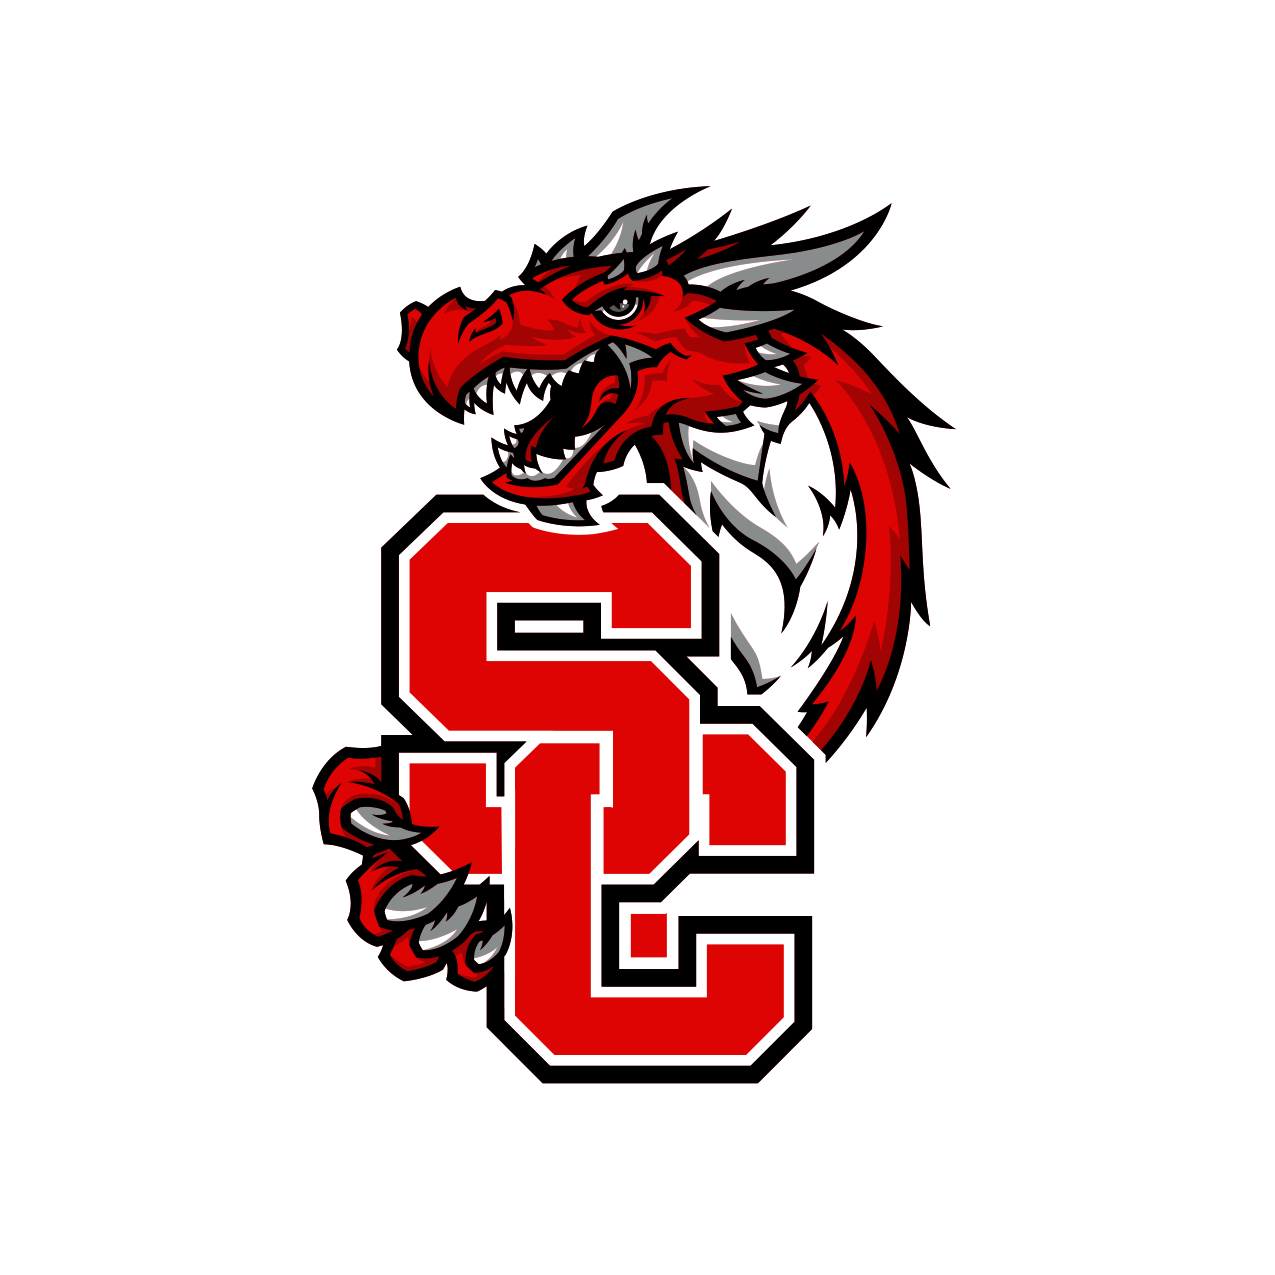 District logo - Mascot dragon behind the initials S and C